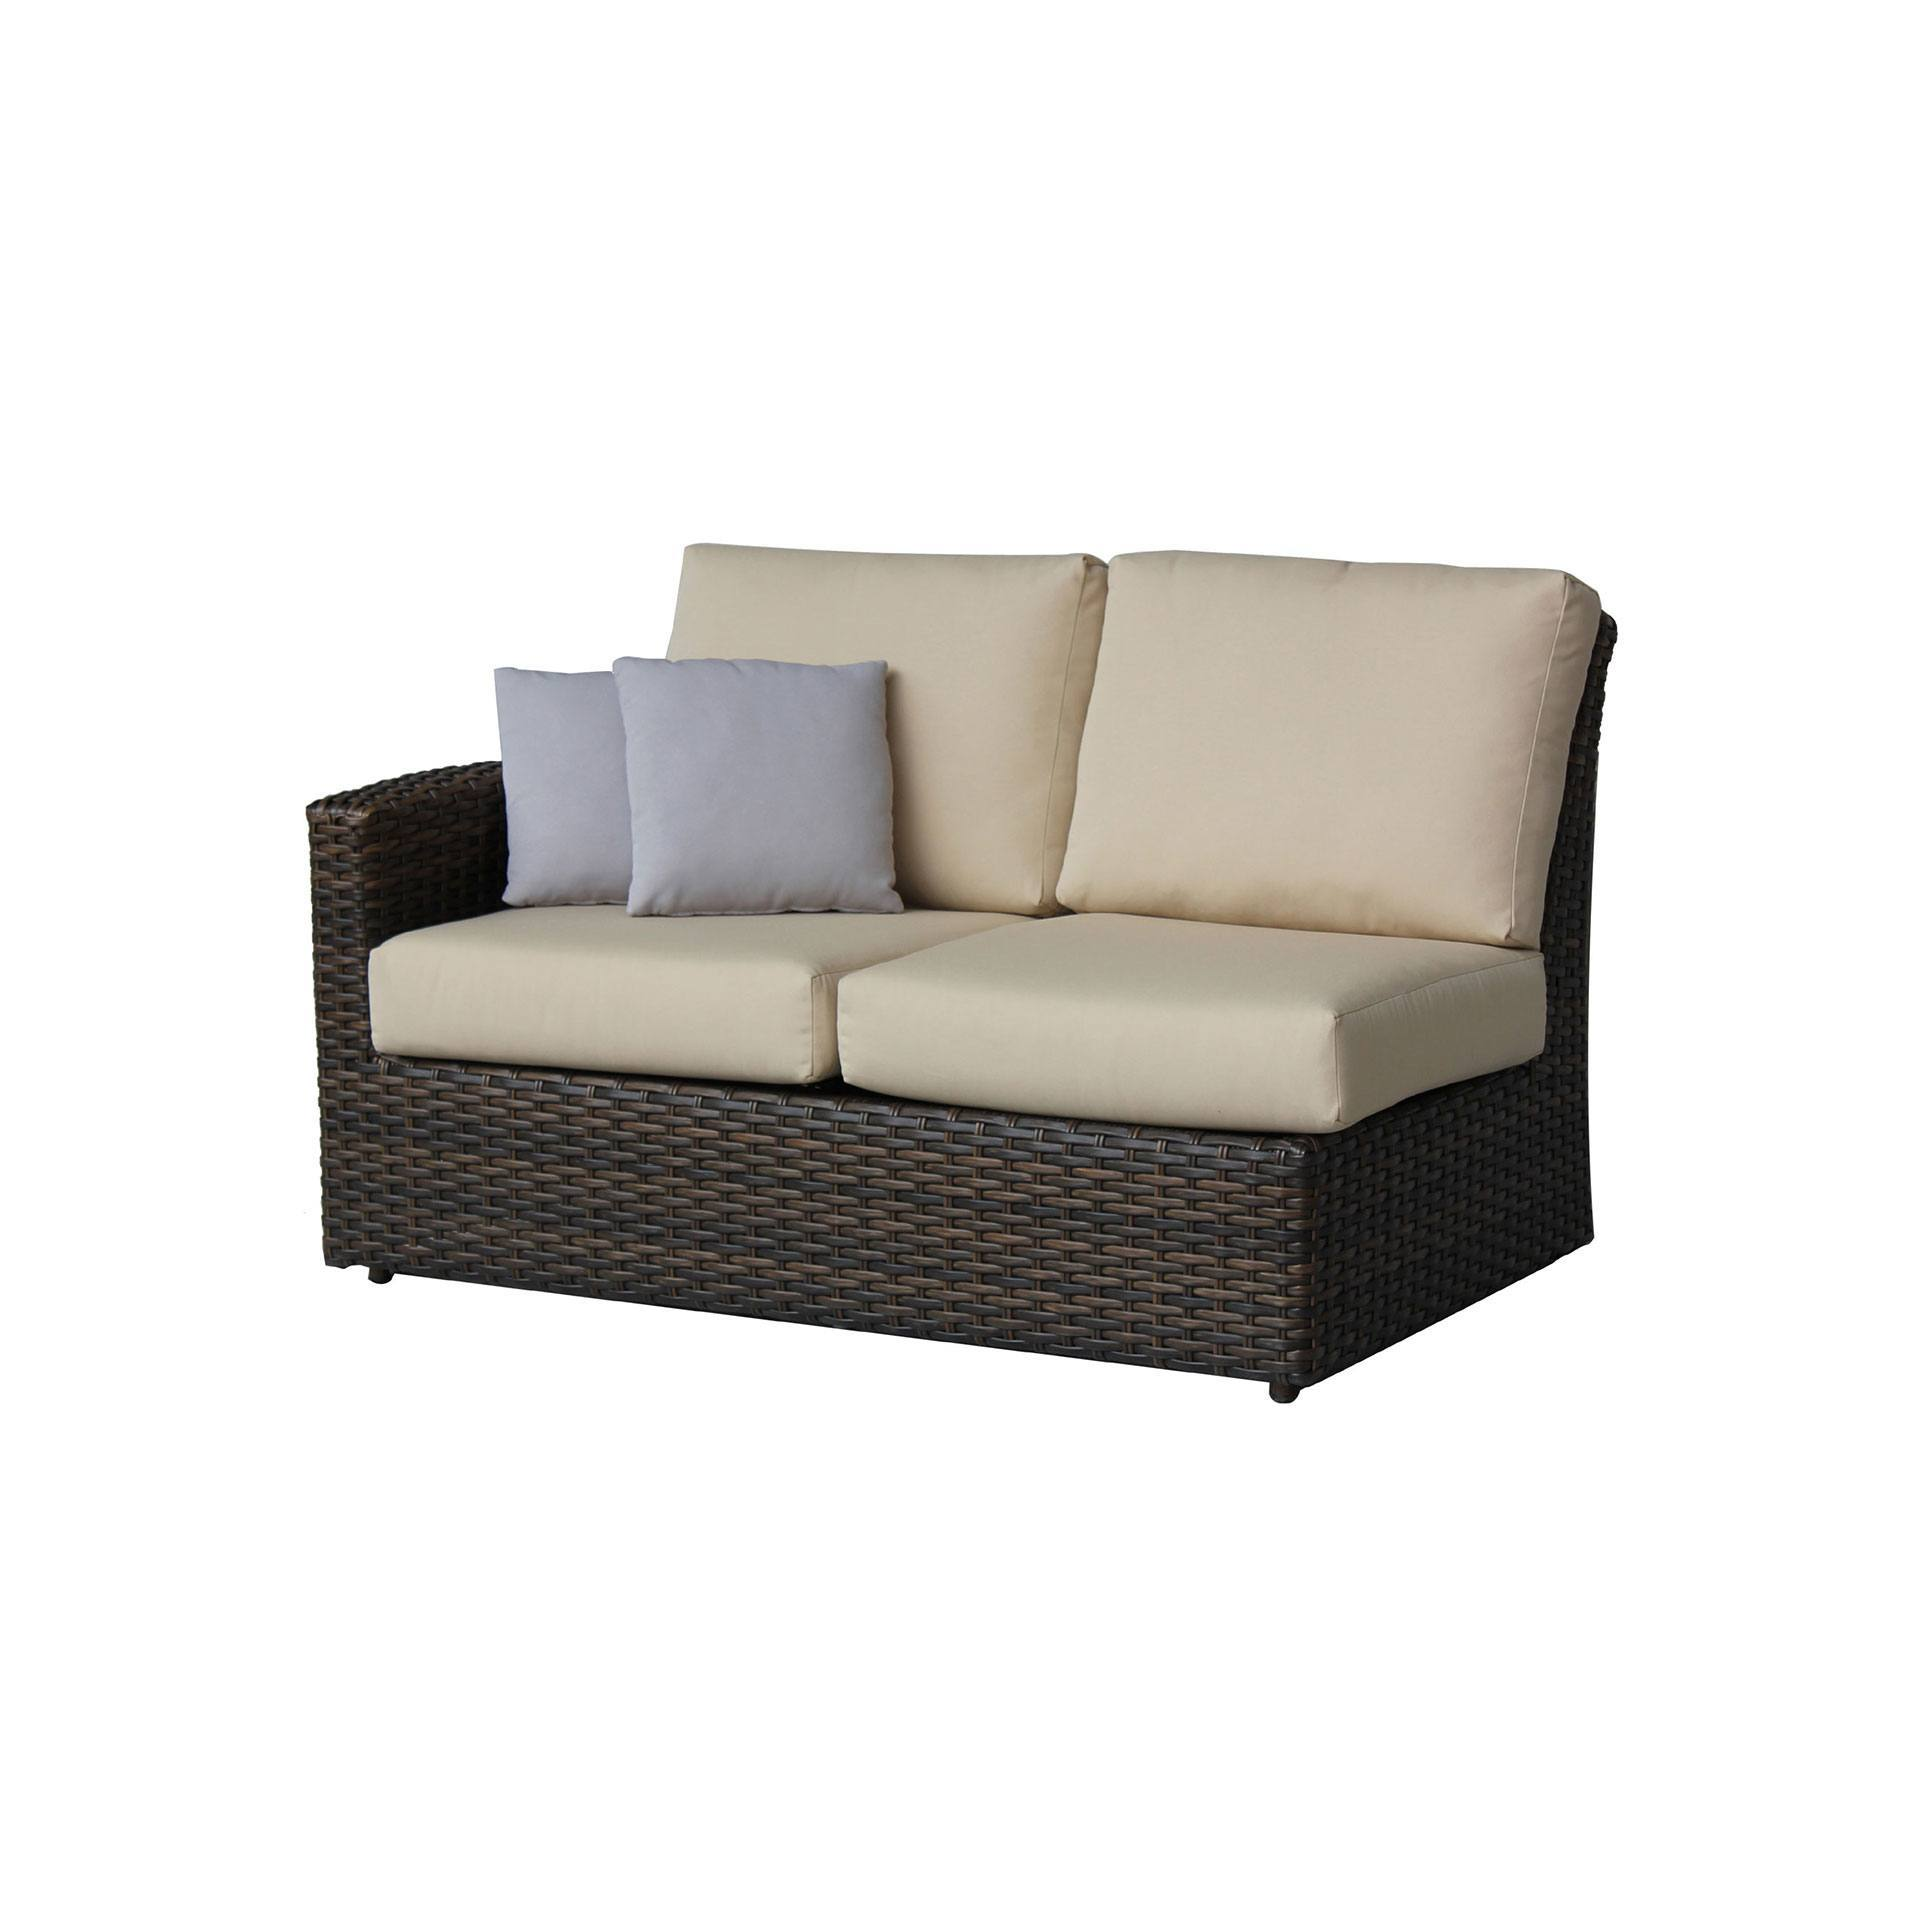 Ratana – Portfino Seating